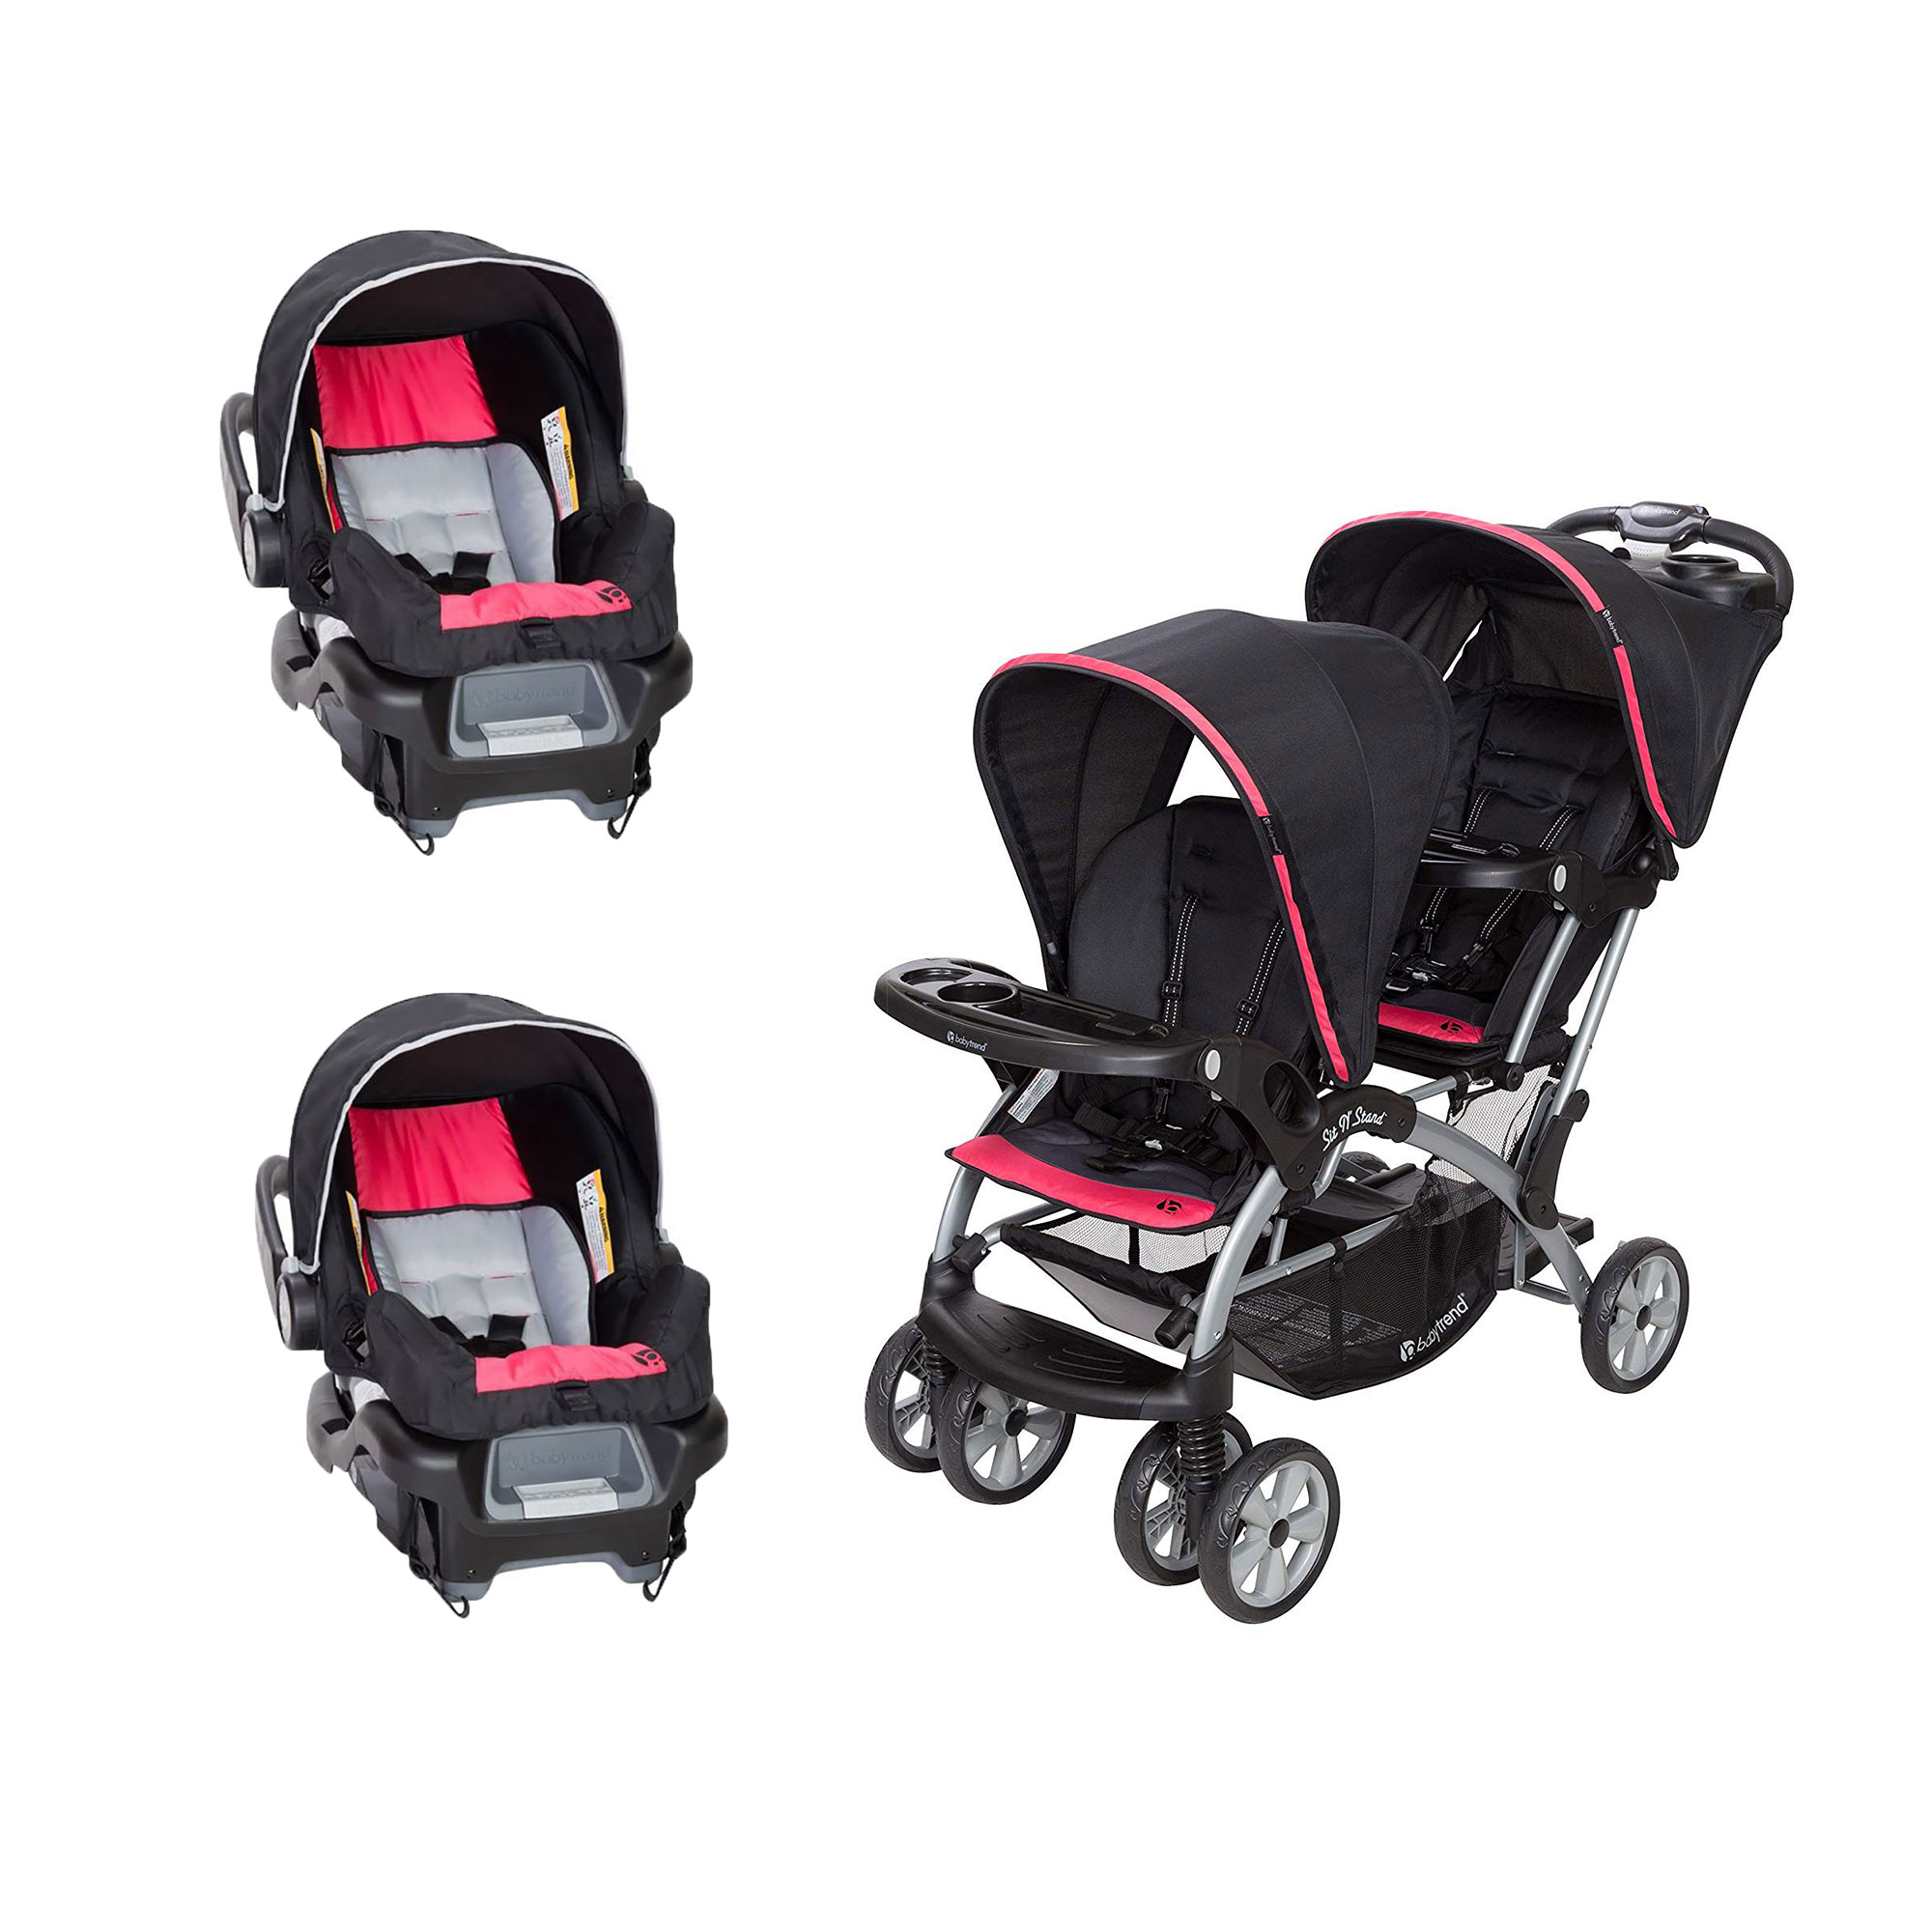 Baby Trend Sit N' Stand Double Stroller with 2 Infant Car Seats, Optic Pink by Baby Trend